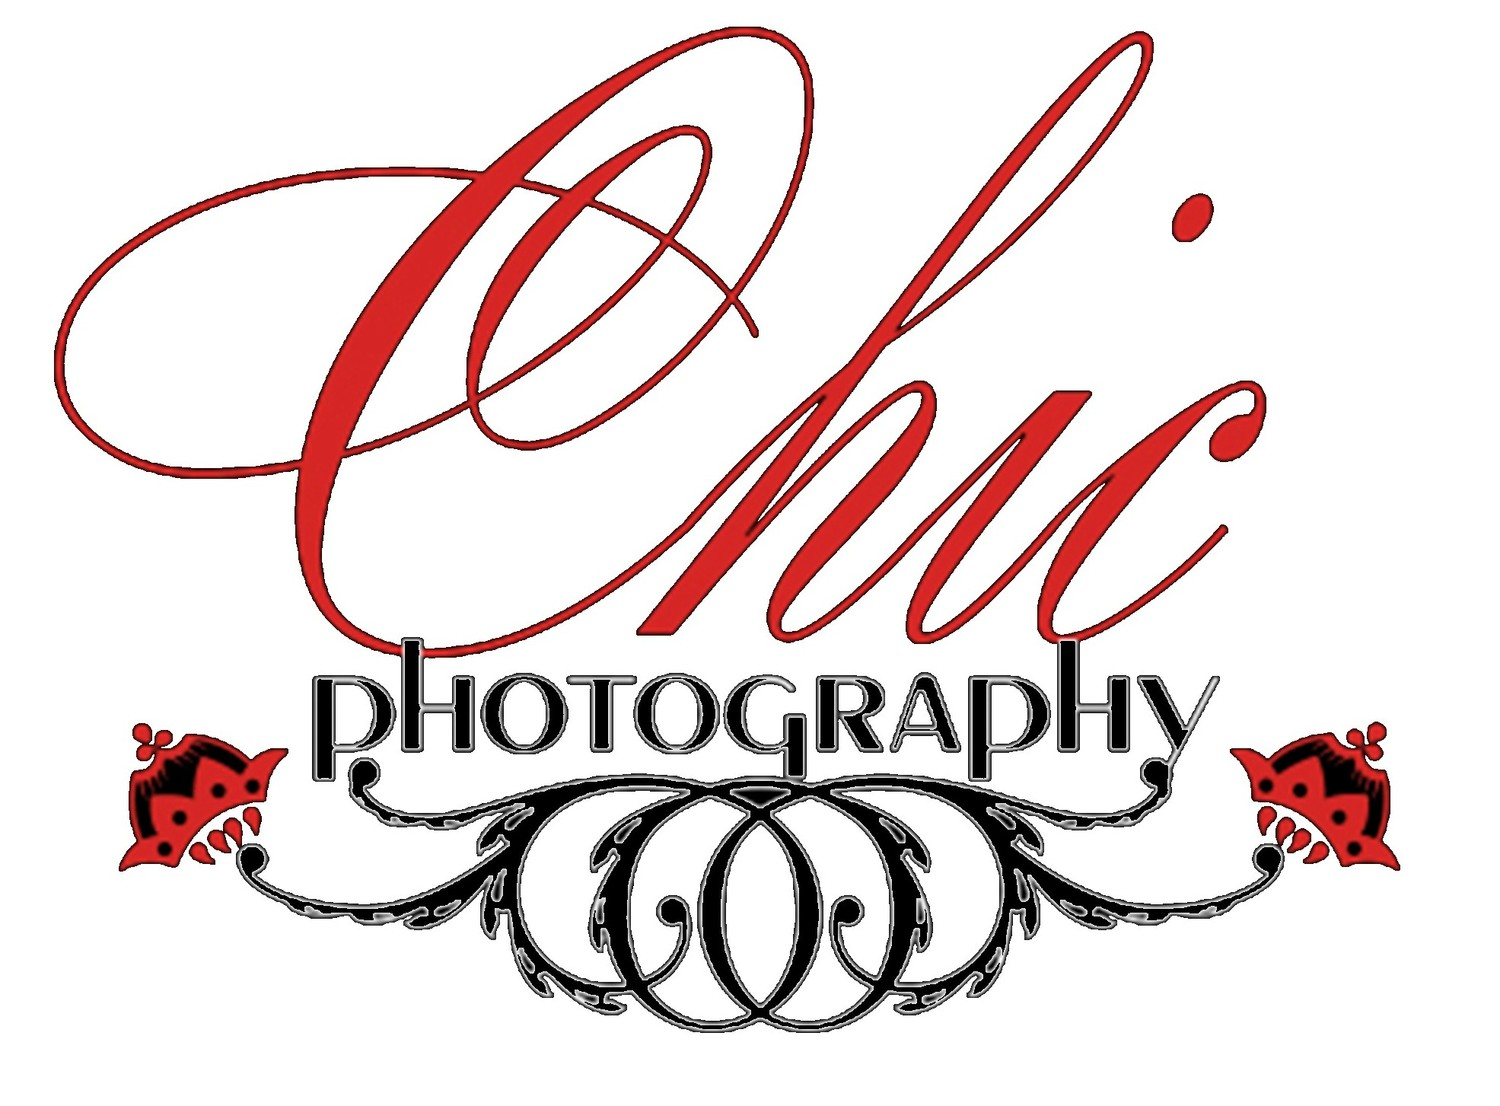 Chic Photography